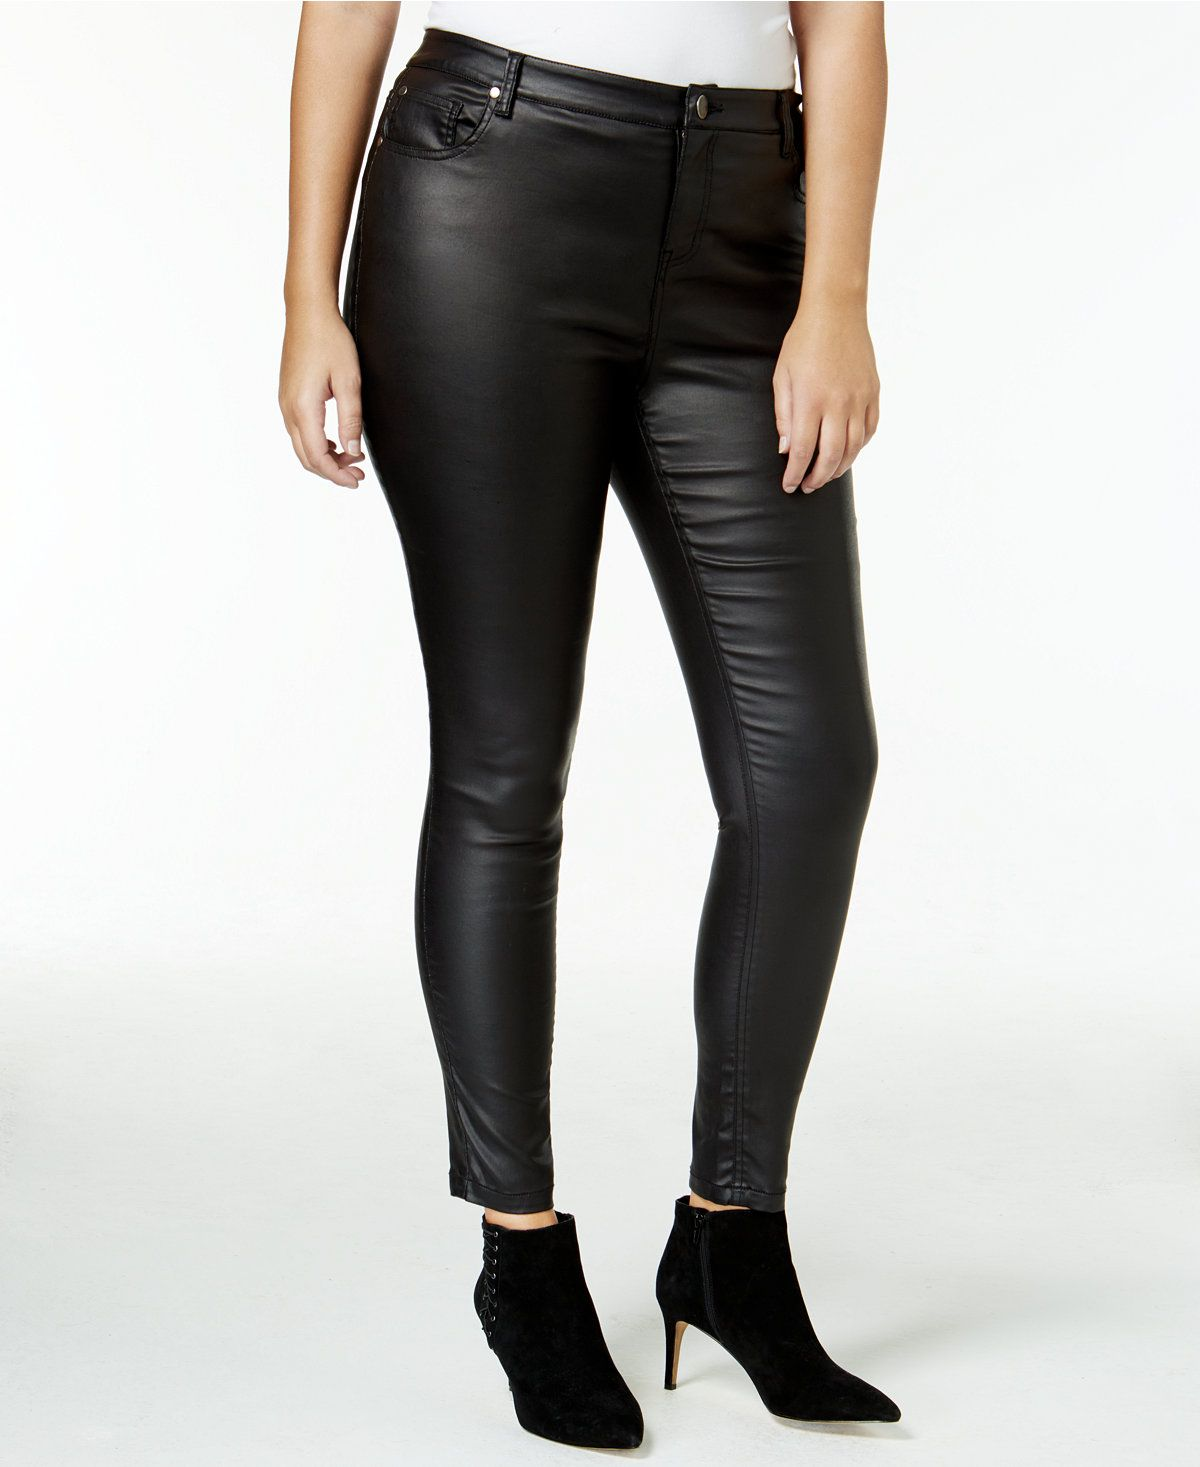 mblm by Tess Holliday Trendy Plus Size Faux-Leather Pants | Shops ...